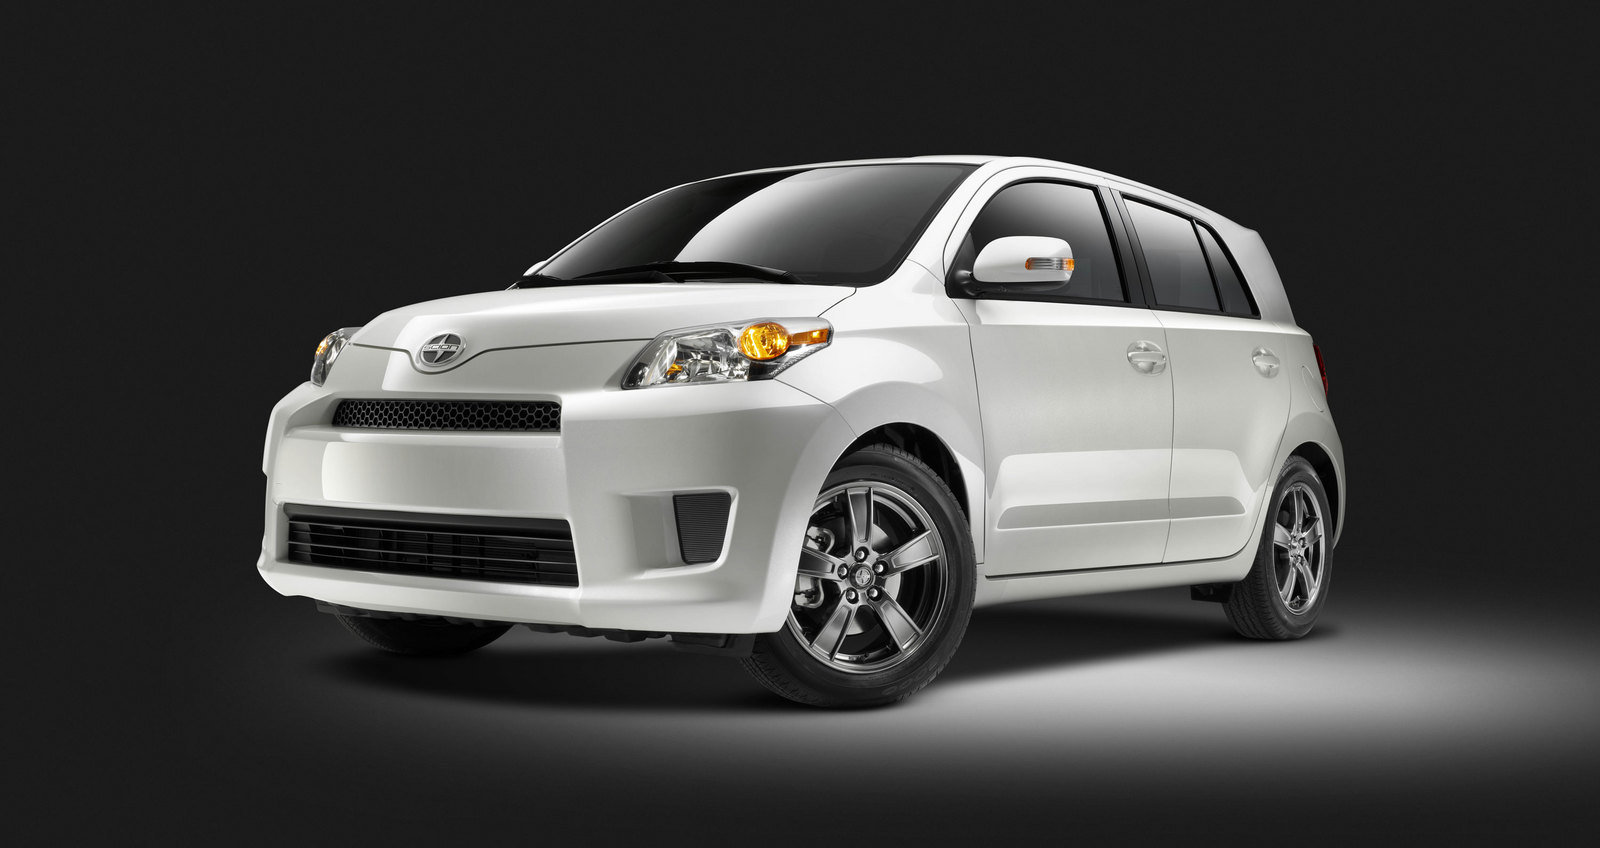 2012 scion xd release series 4 0 review top speed. Black Bedroom Furniture Sets. Home Design Ideas